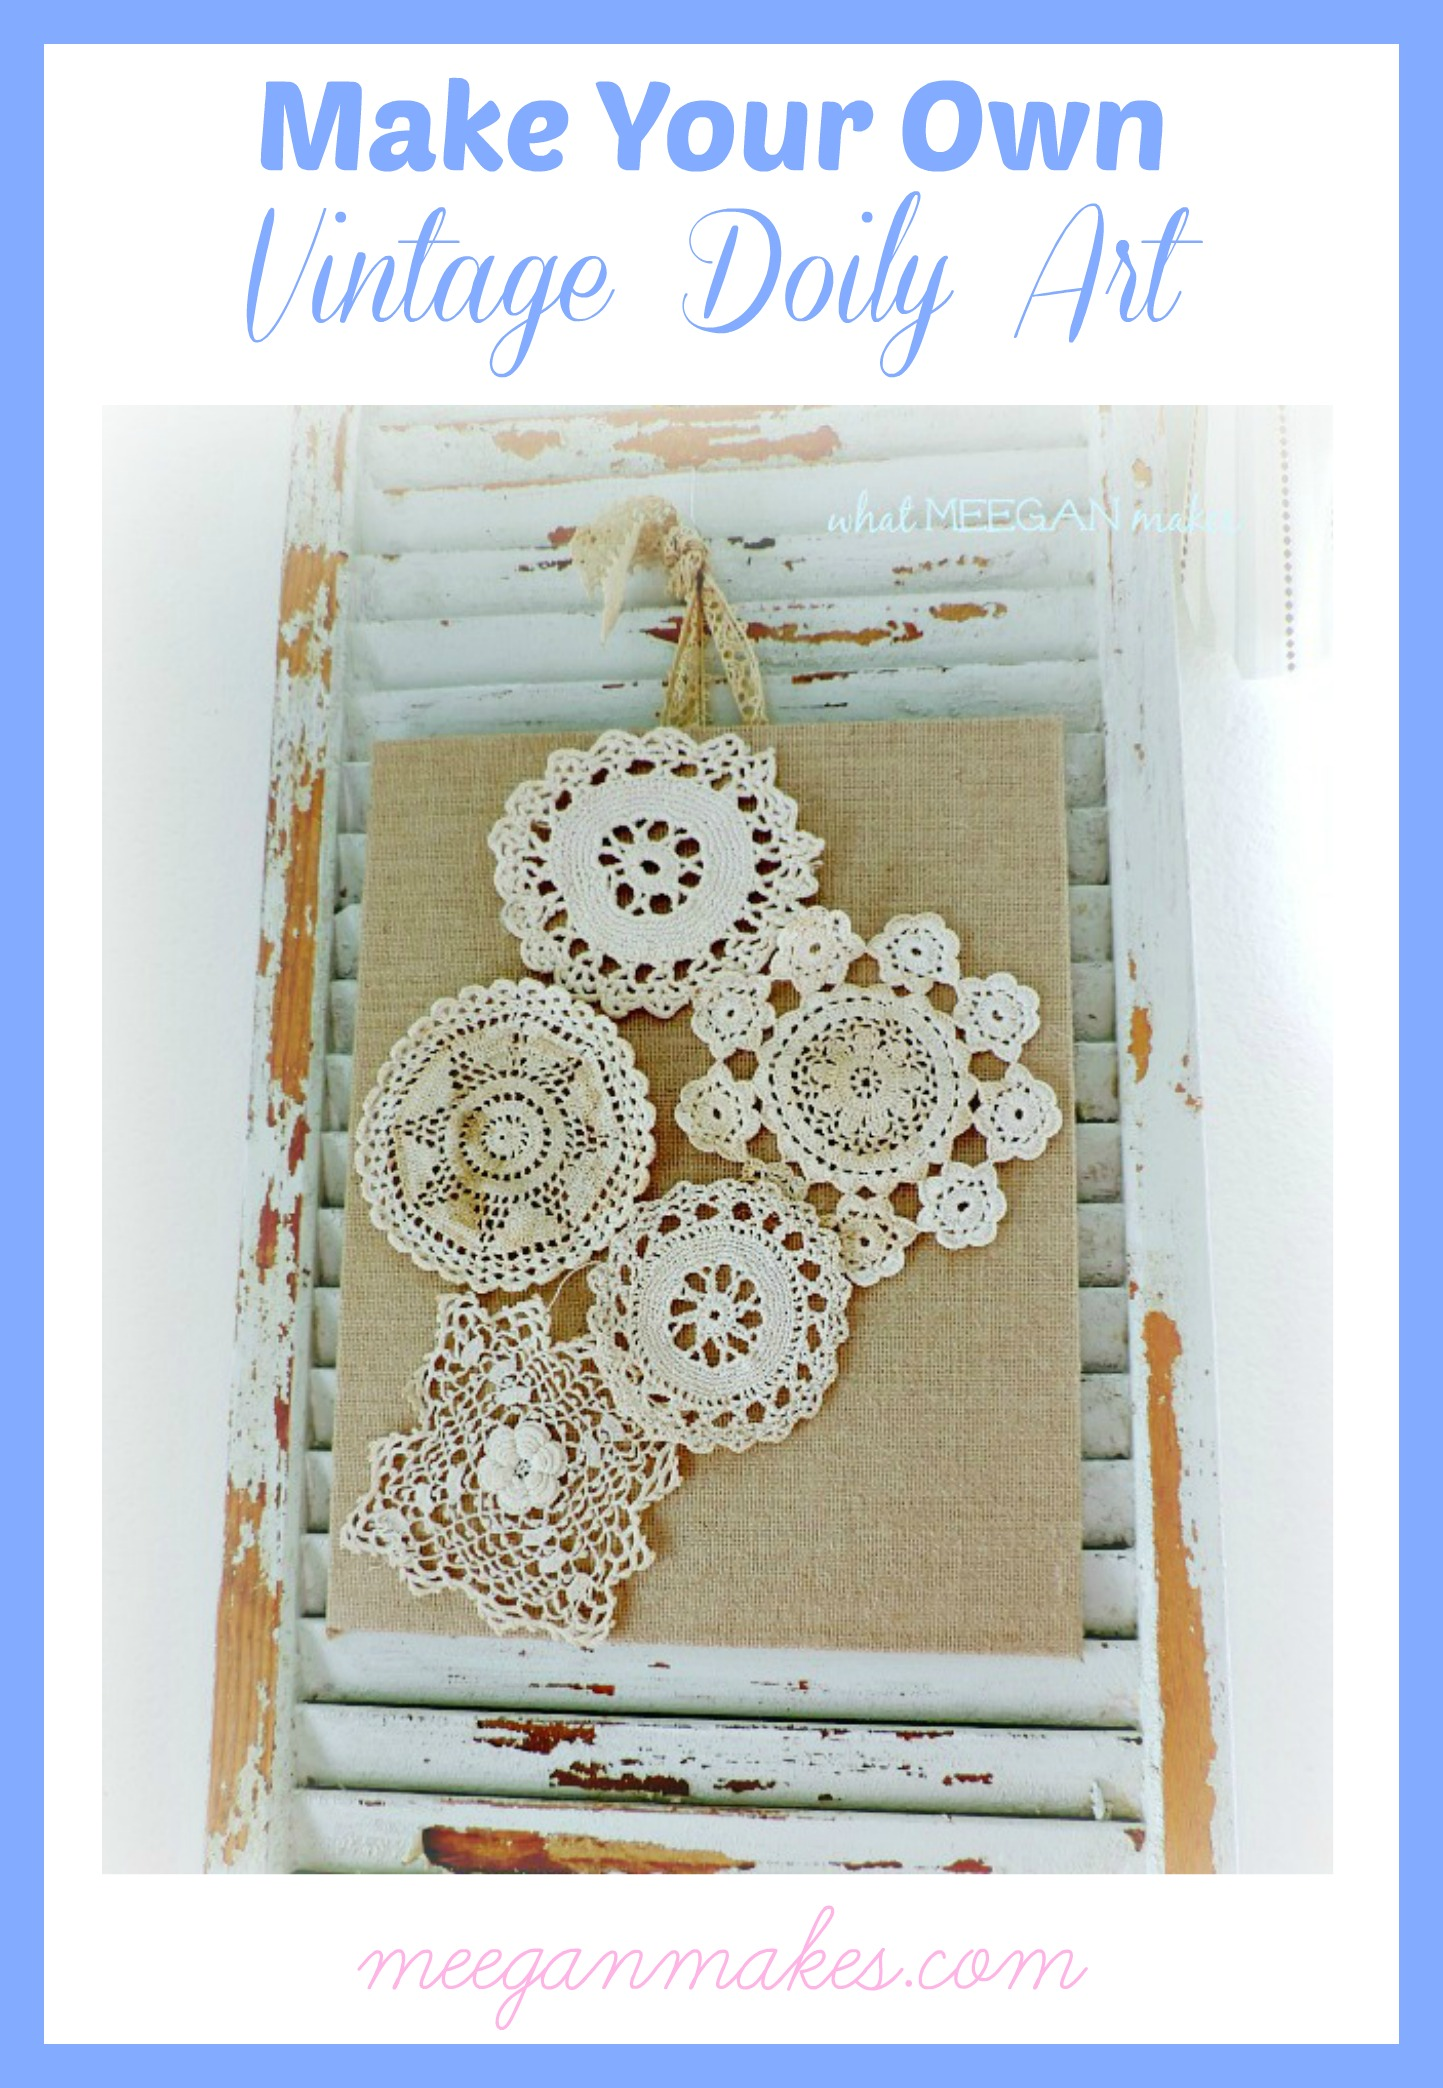 Make Your Own Vintage Doily Art